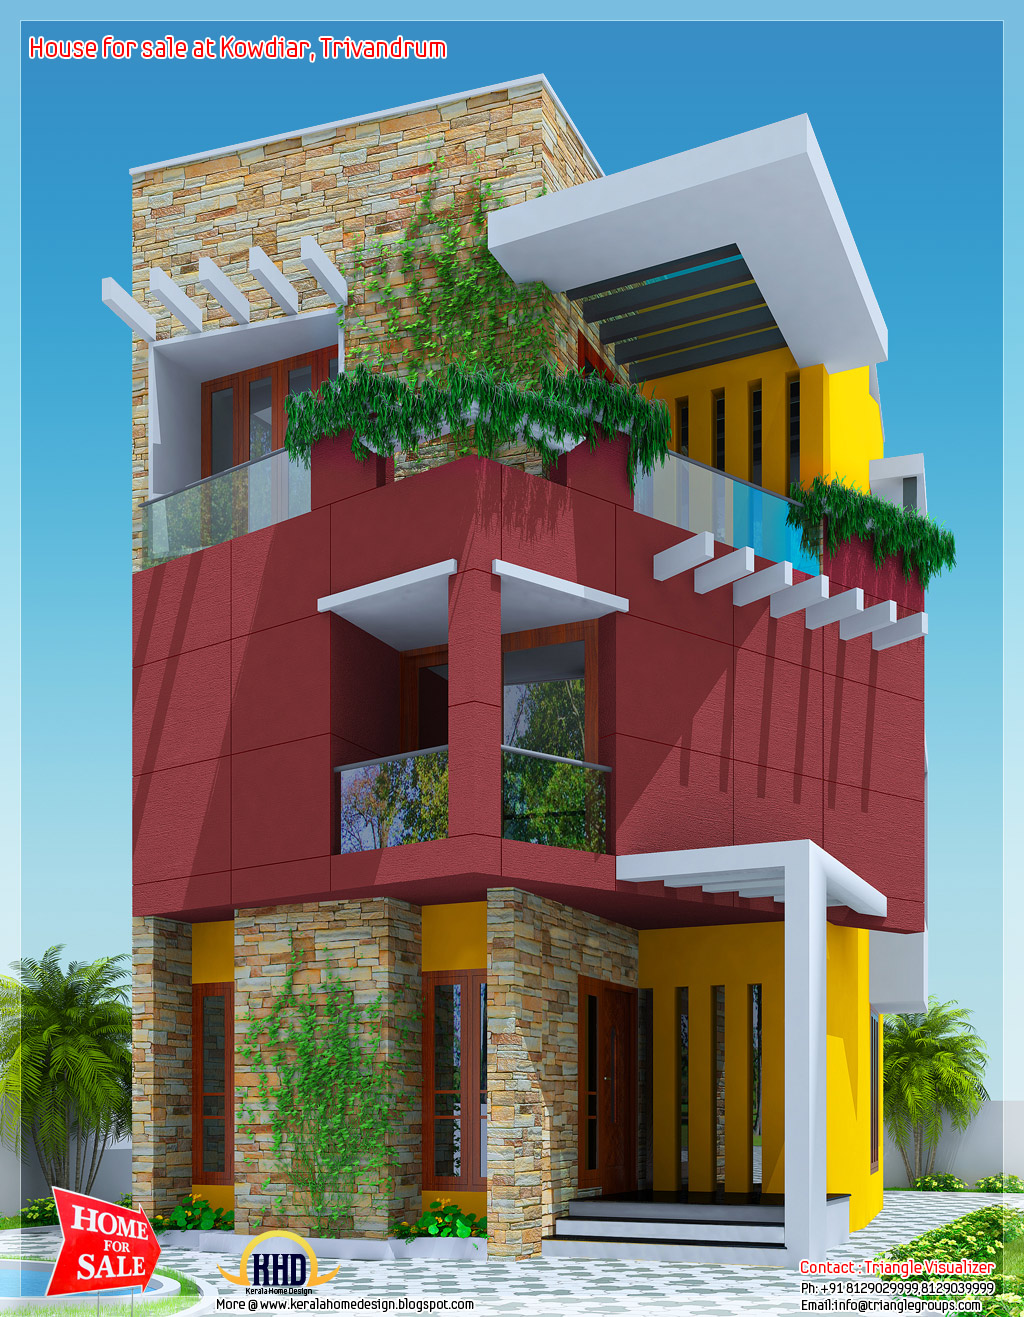 3 floor house for sale at kowdiar trivandrum kerala for 3 floor house design